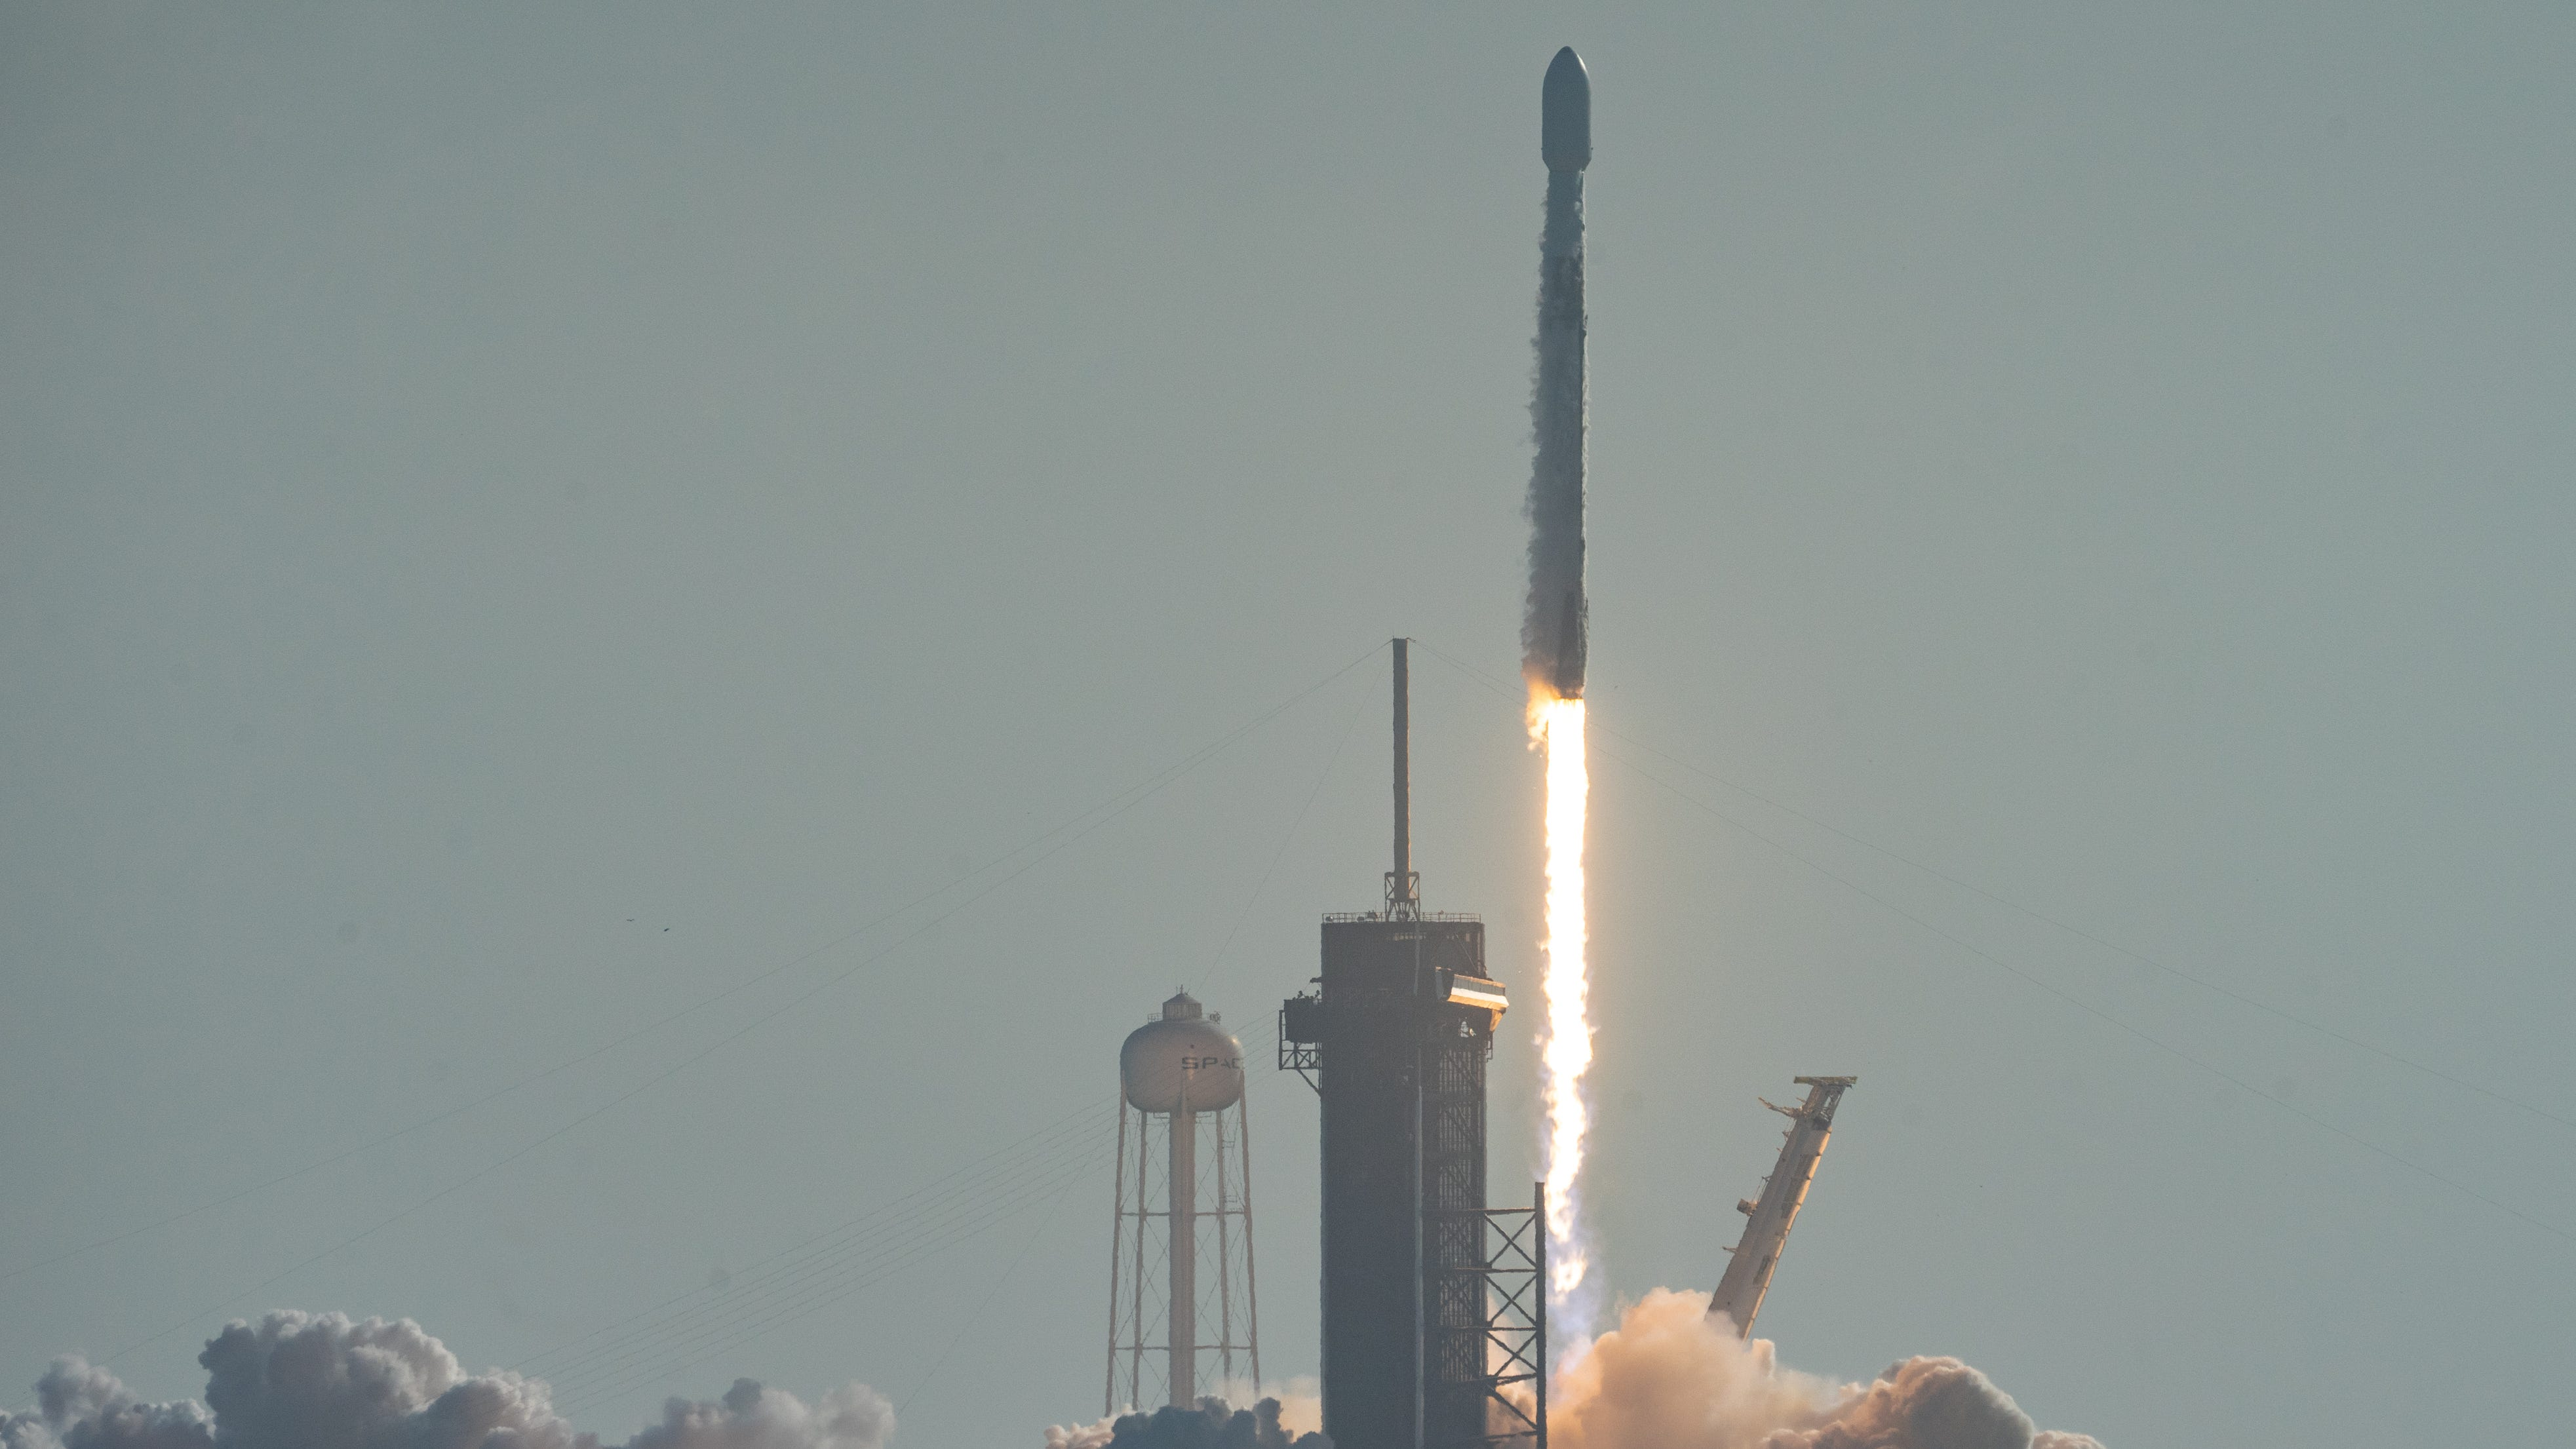 A SpaceX Falcon 9 rocket launches from Kennedy Spa